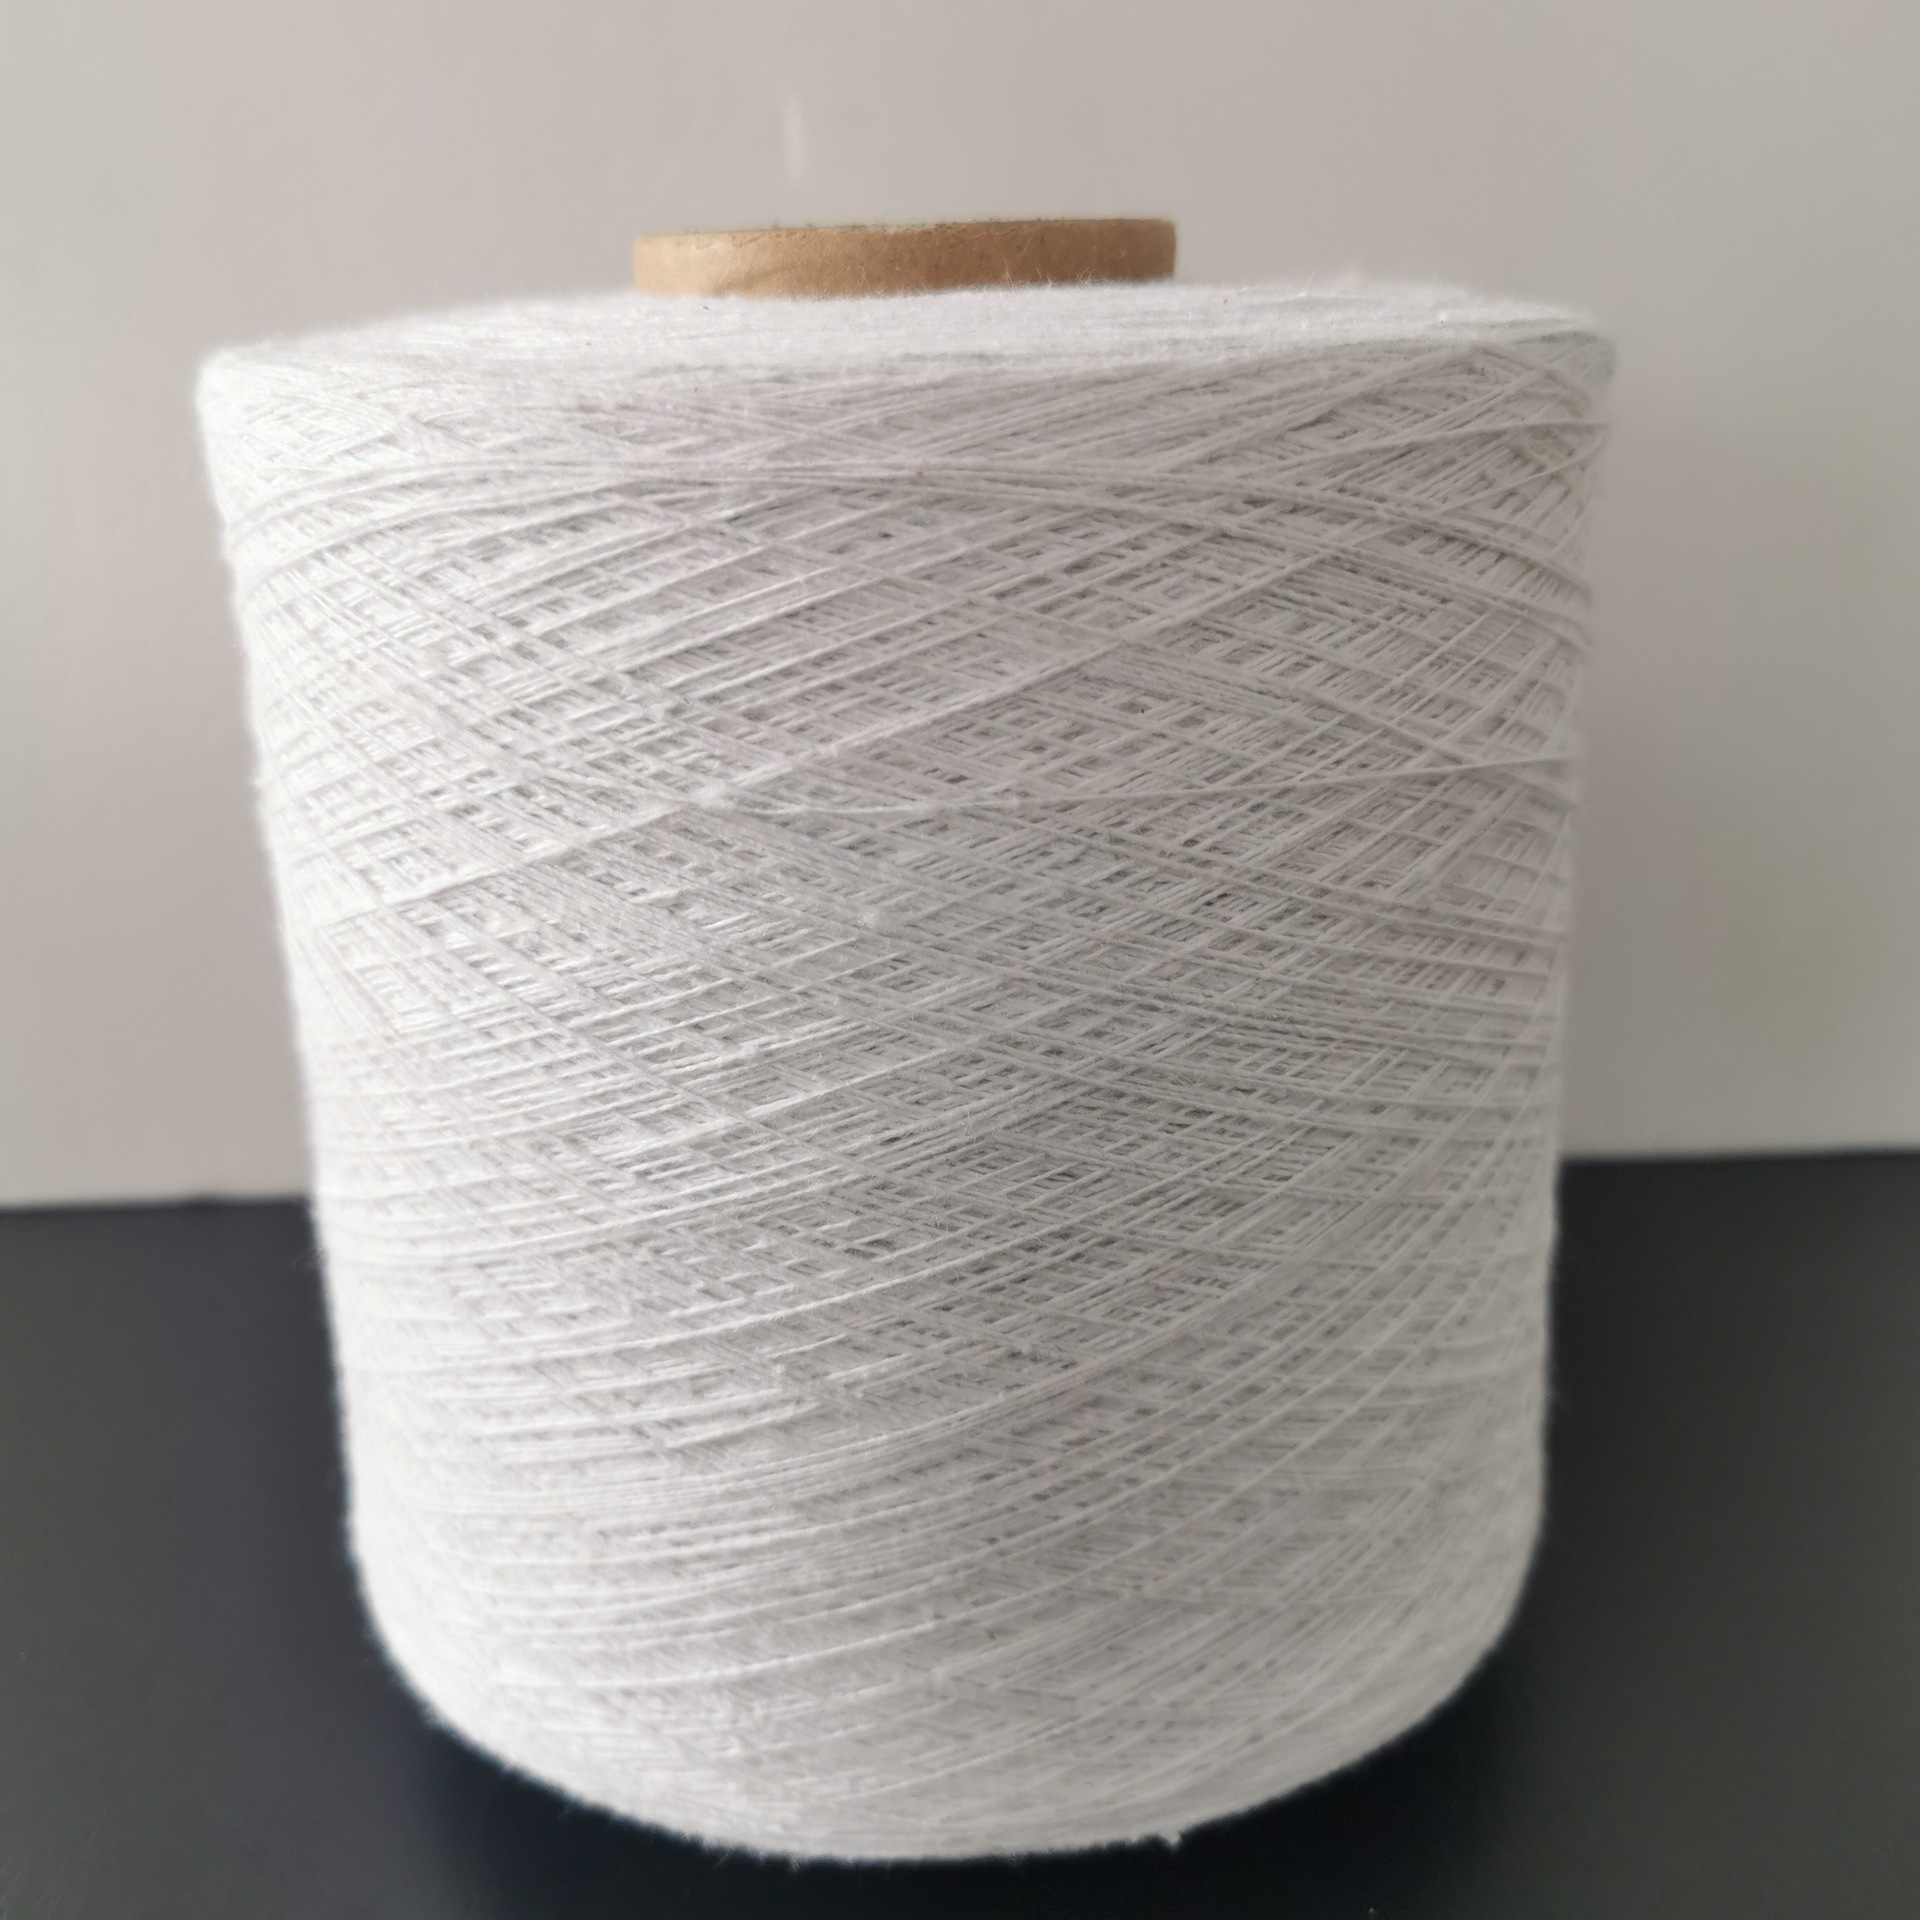 HENGLI Open-end spinning yarn, white cotton spinning yarn, polyester-cotton knitted cotton yarn